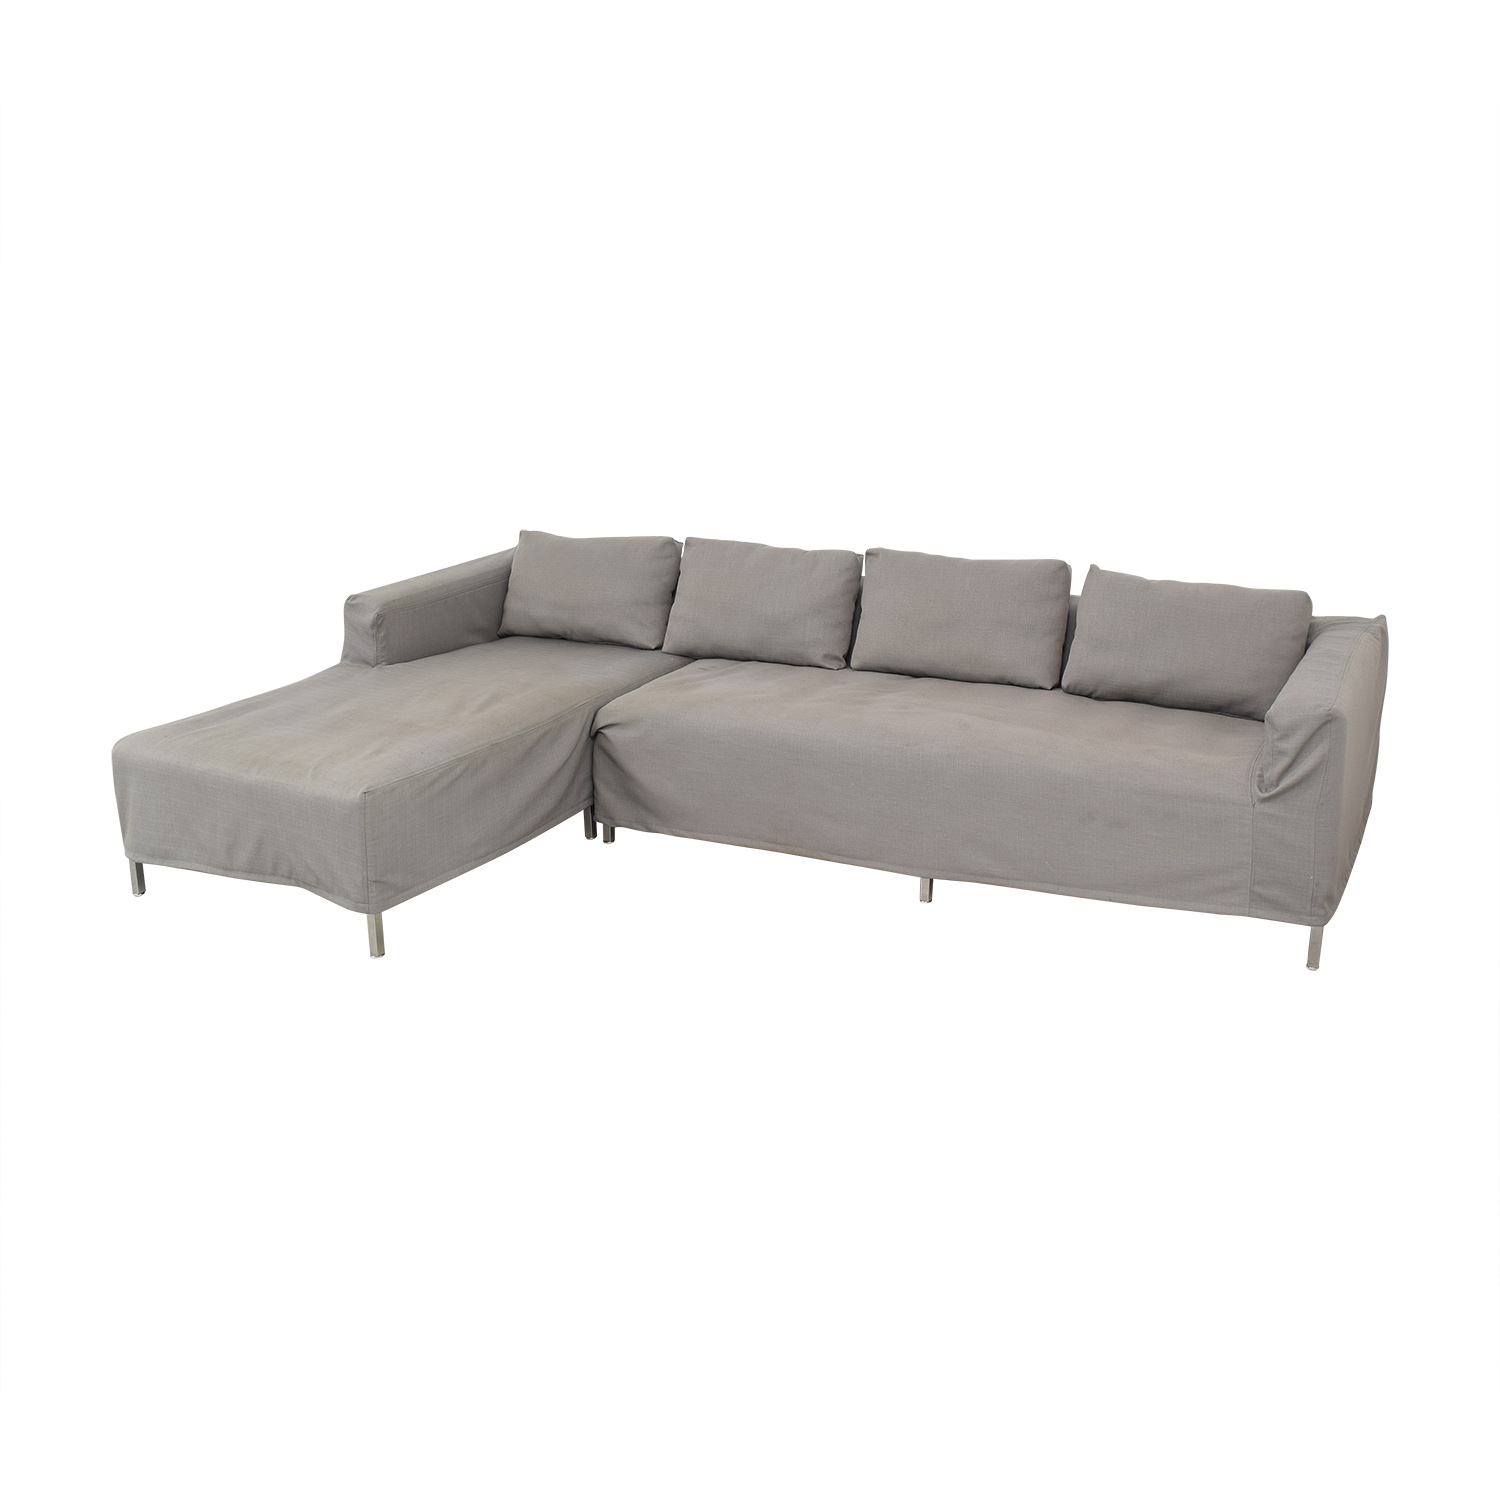 Gus Modern Gus Modern Sectional Sofa with Chaise on sale